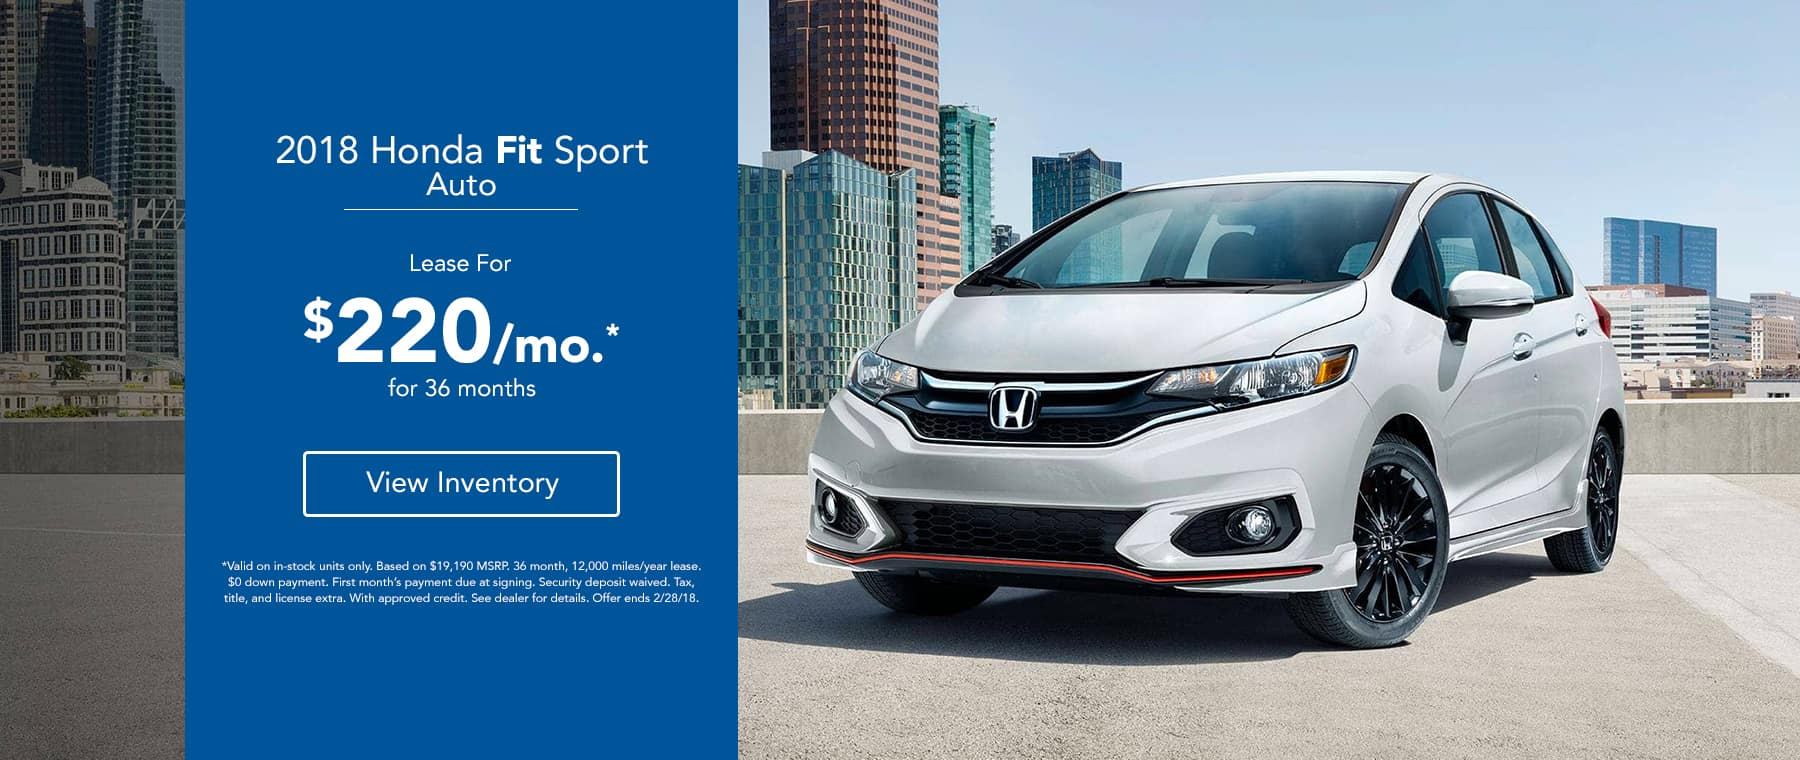 Legends Honda Fit Sport - Lease for $220/mo